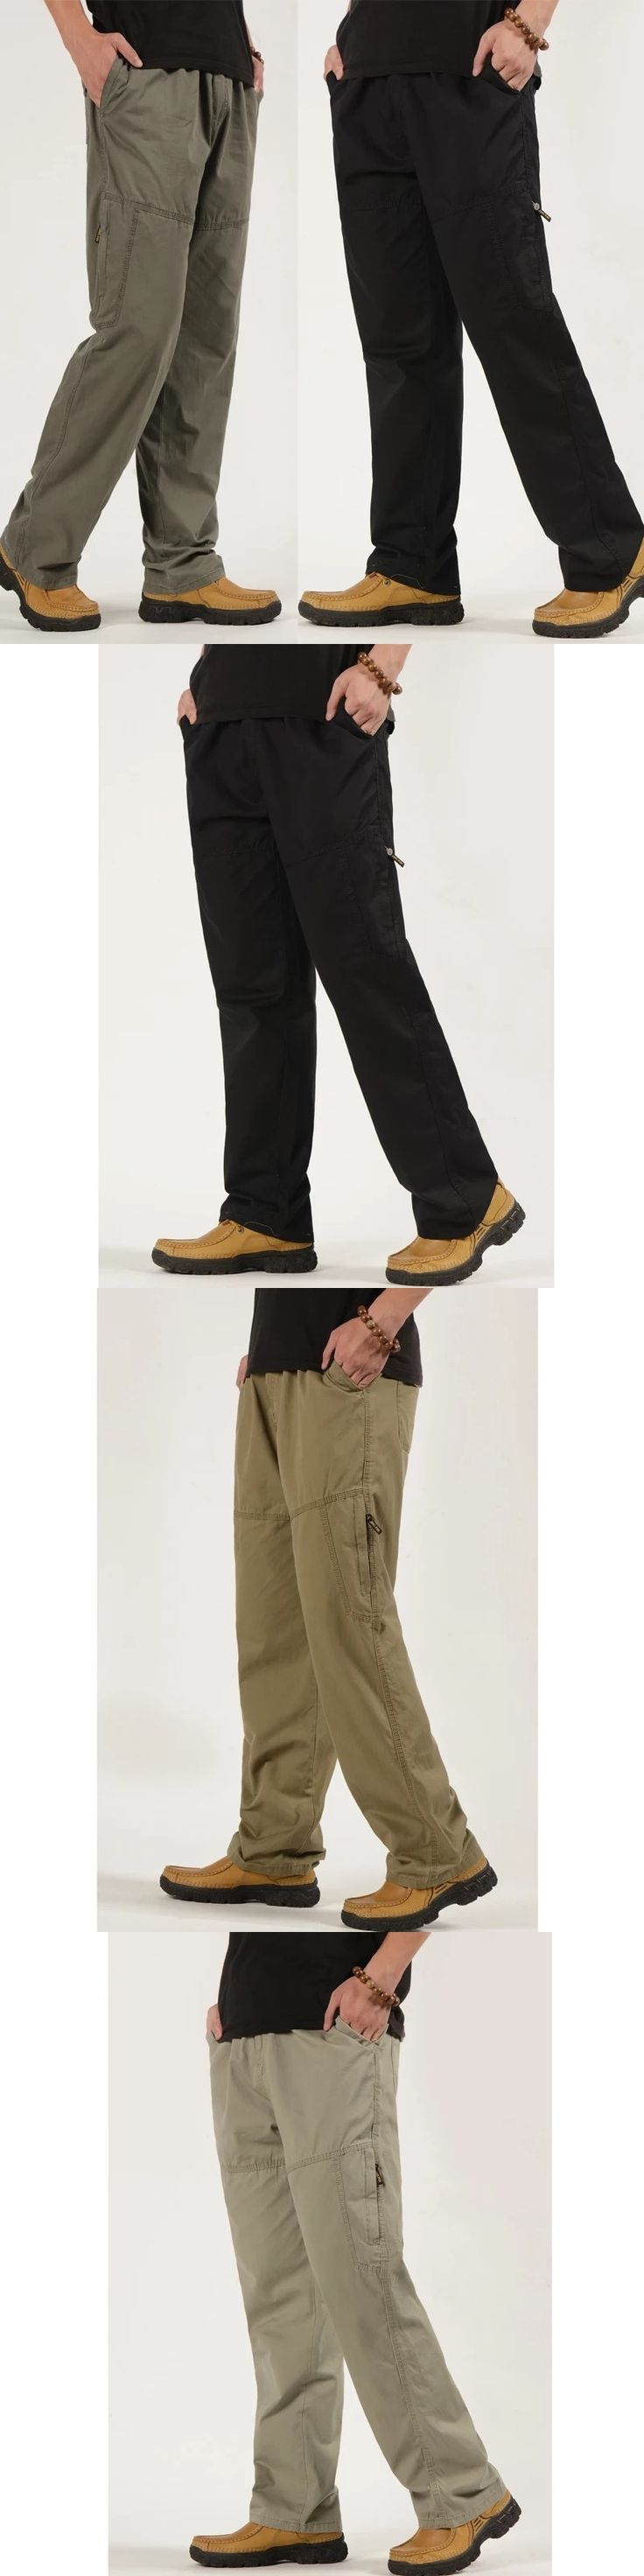 6XL Plus size High Quality Mens Cargo Pants Casual loose Men Pant Multi Pocket Military Overall Men Outdoors sweatpants Trousers